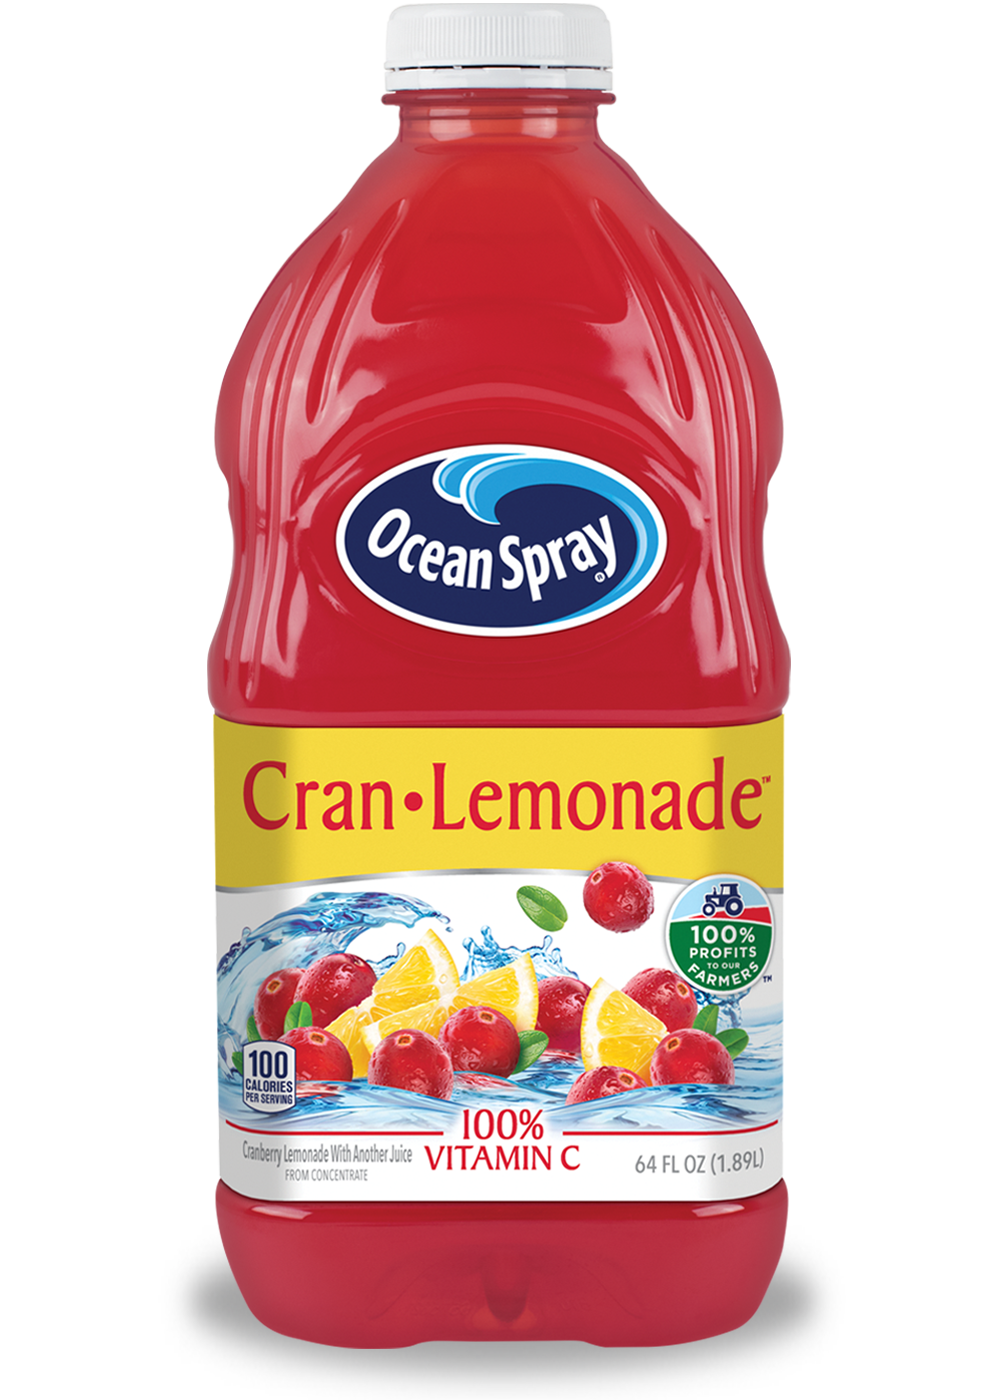 Cran Lemonade Cranberry Lemonade Juice Drink Ocean Spray 174